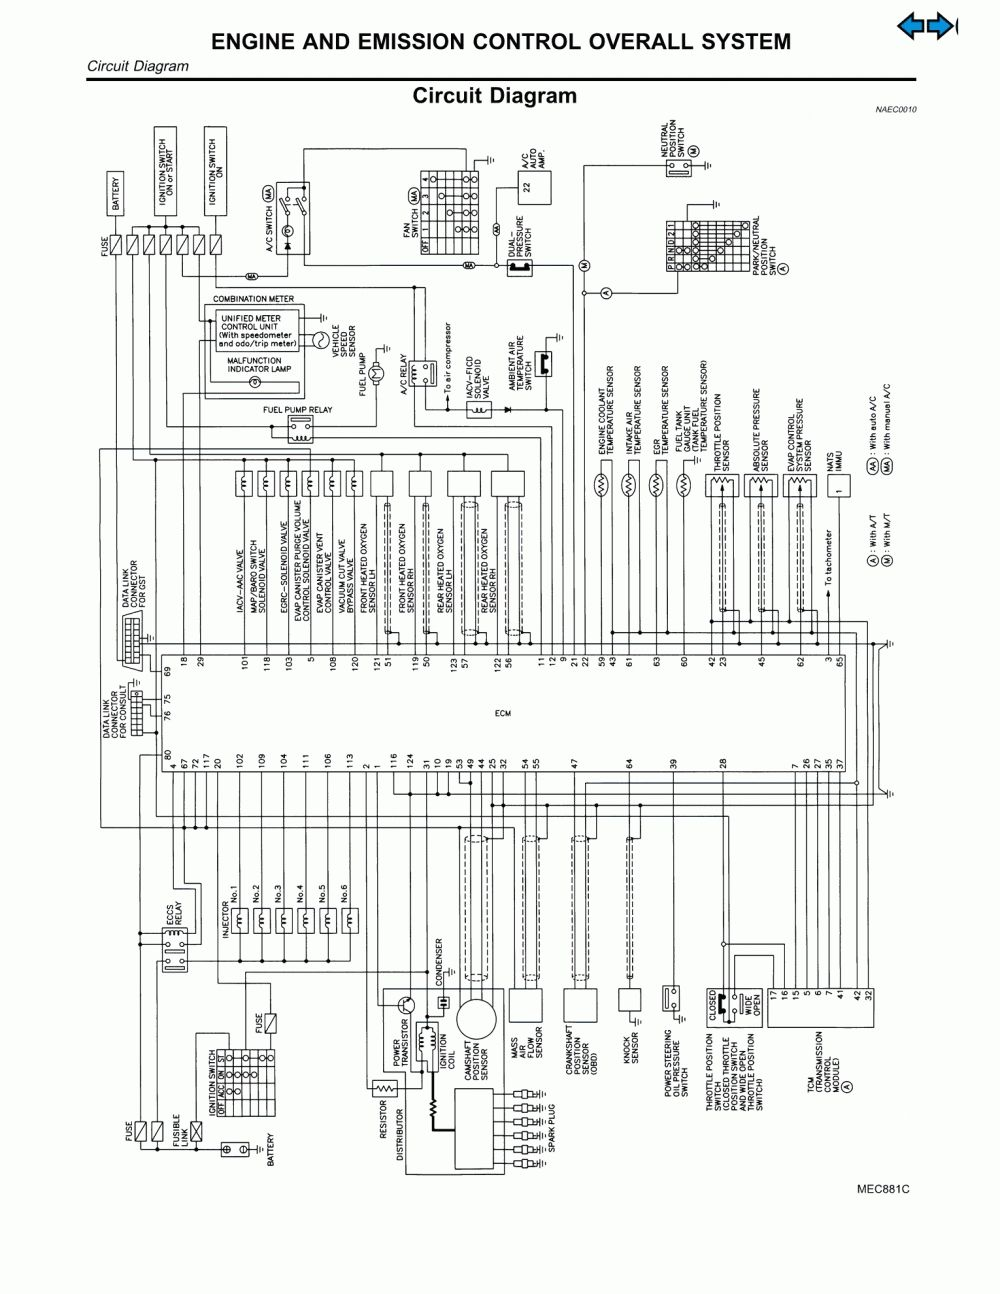 nissan leaf battery wiring diagram wiringdiagram org Nissan Titan Wiring Schematic nissan leaf battery wiring diagram wiringdiagram org